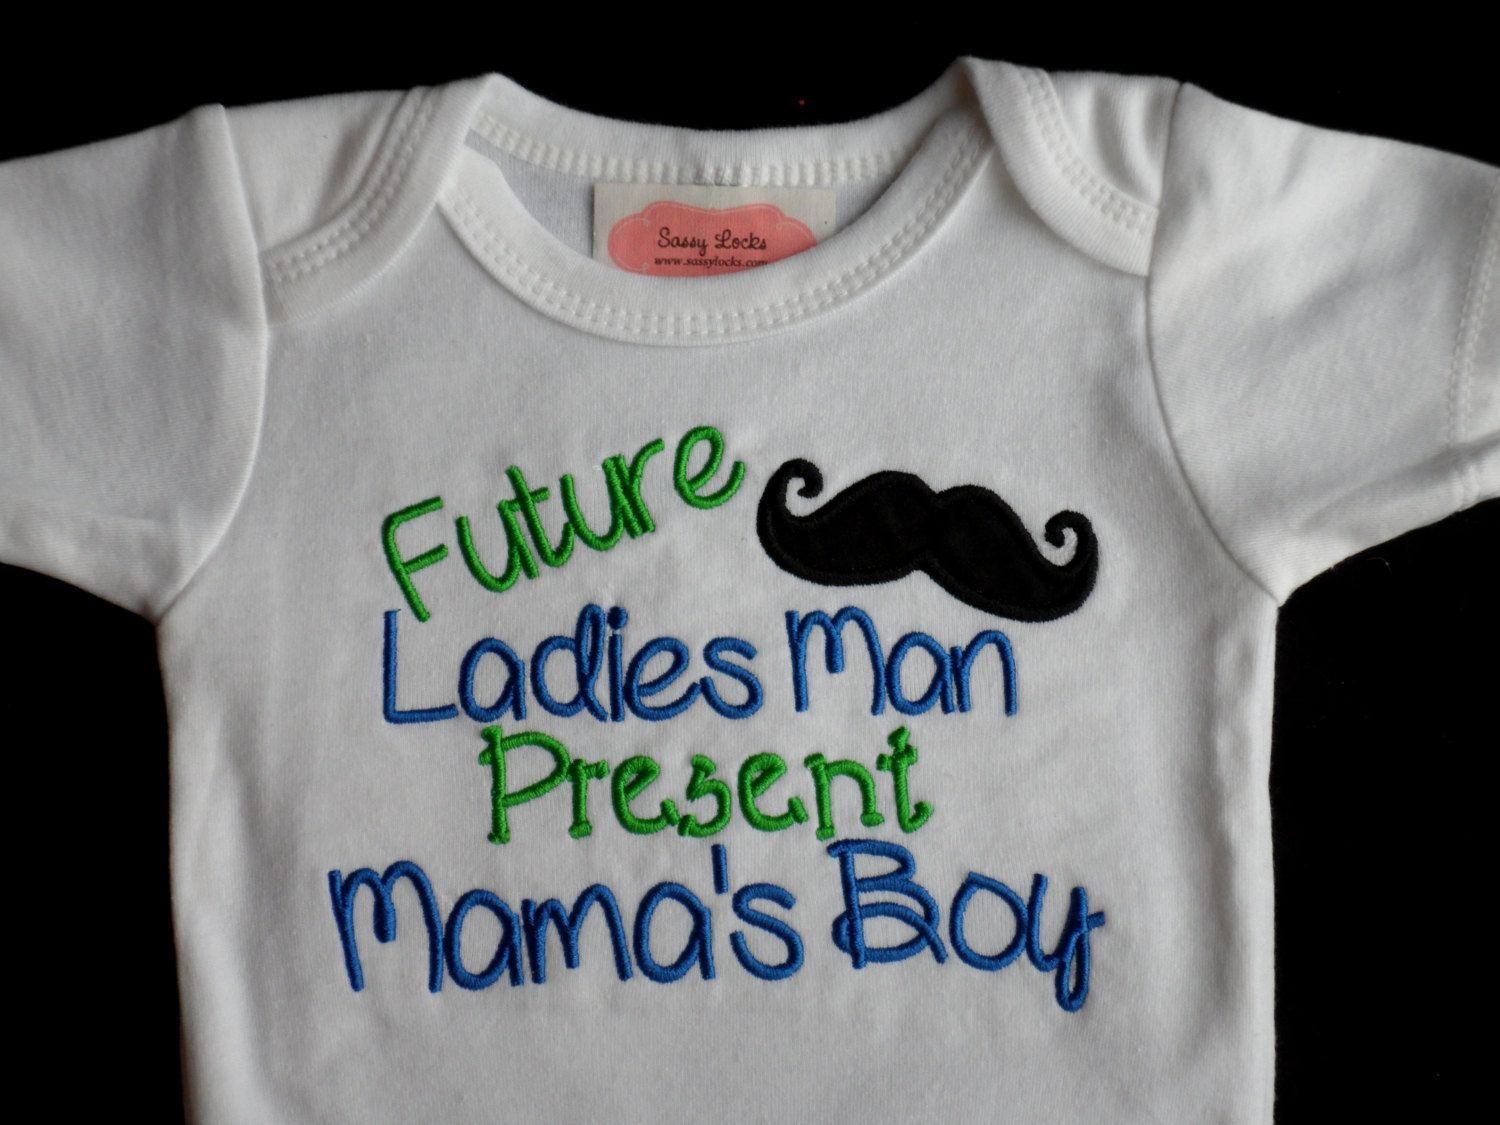 All I Want to Do is Grow A Beard Toddler Short-Sleeve Tee for Boy Girl Infant Kids T-Shirt On Newborn 6-18 Months